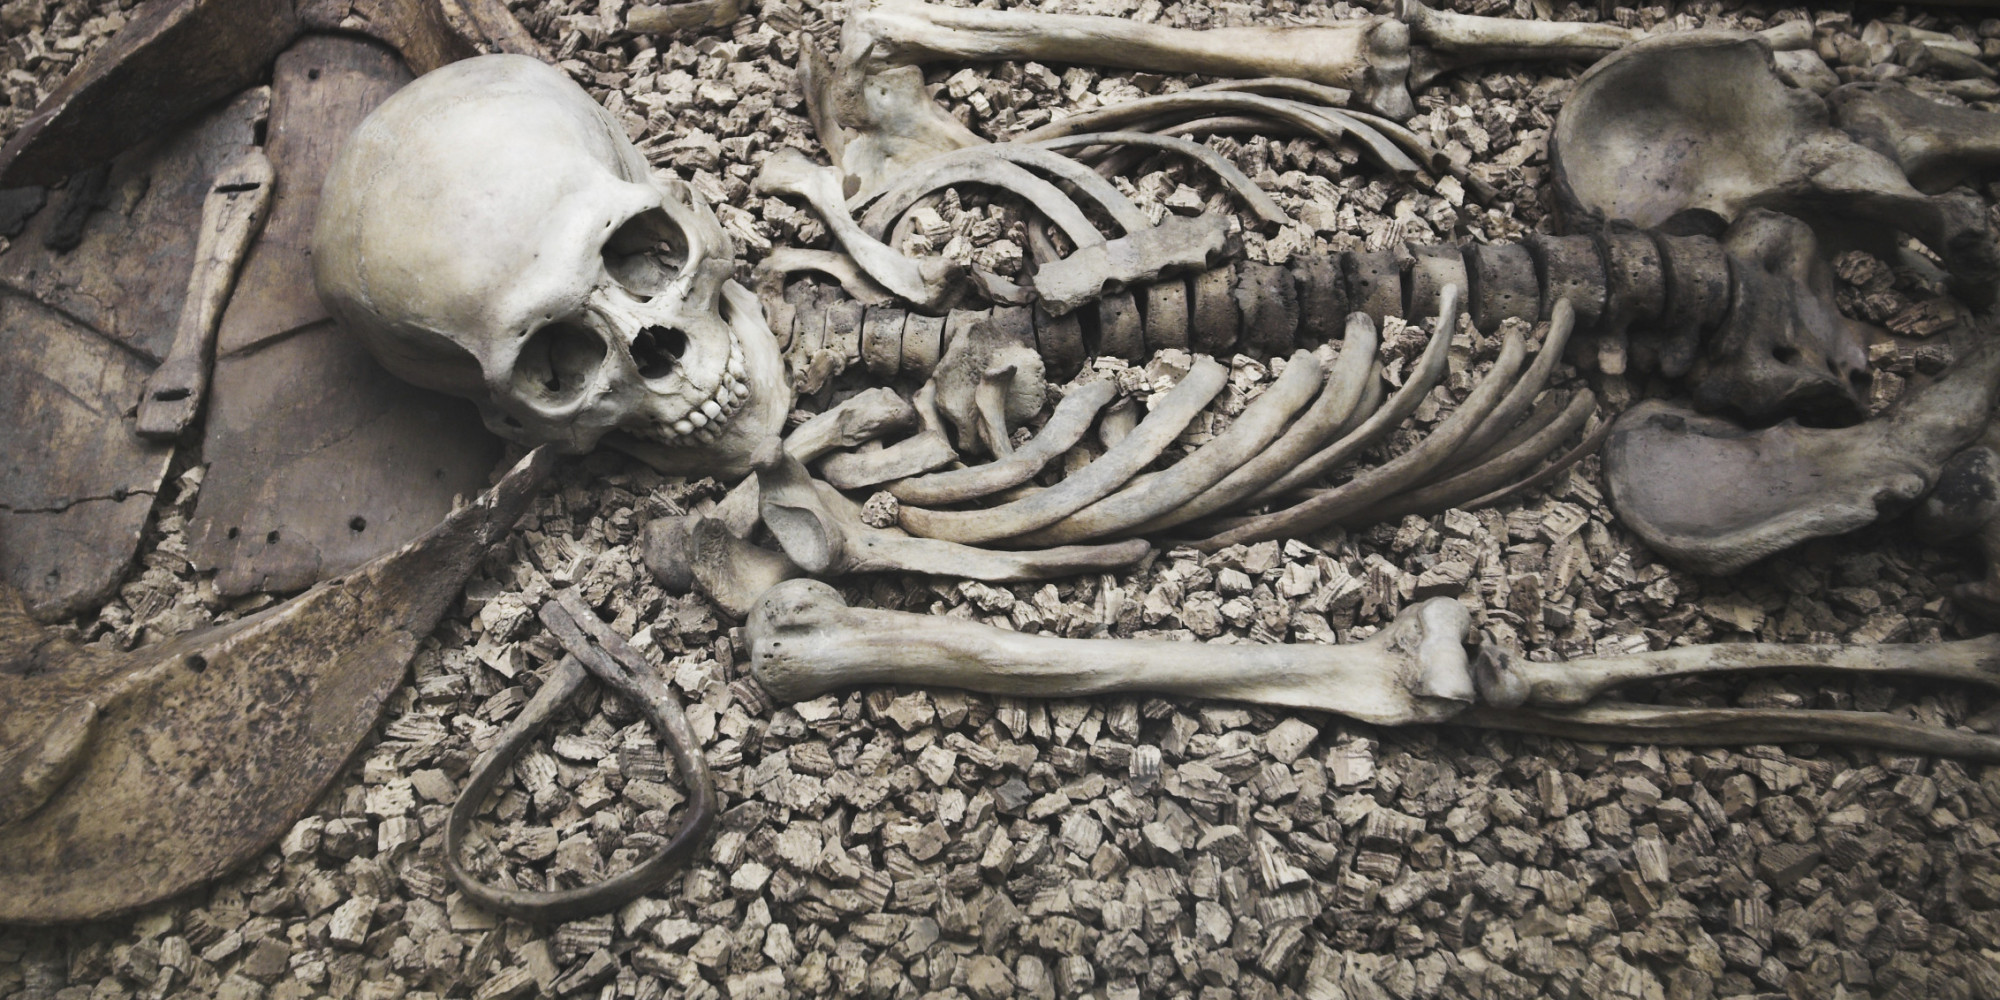 Utah Man Finds Bones In His Backyard And Theyre Probably Human